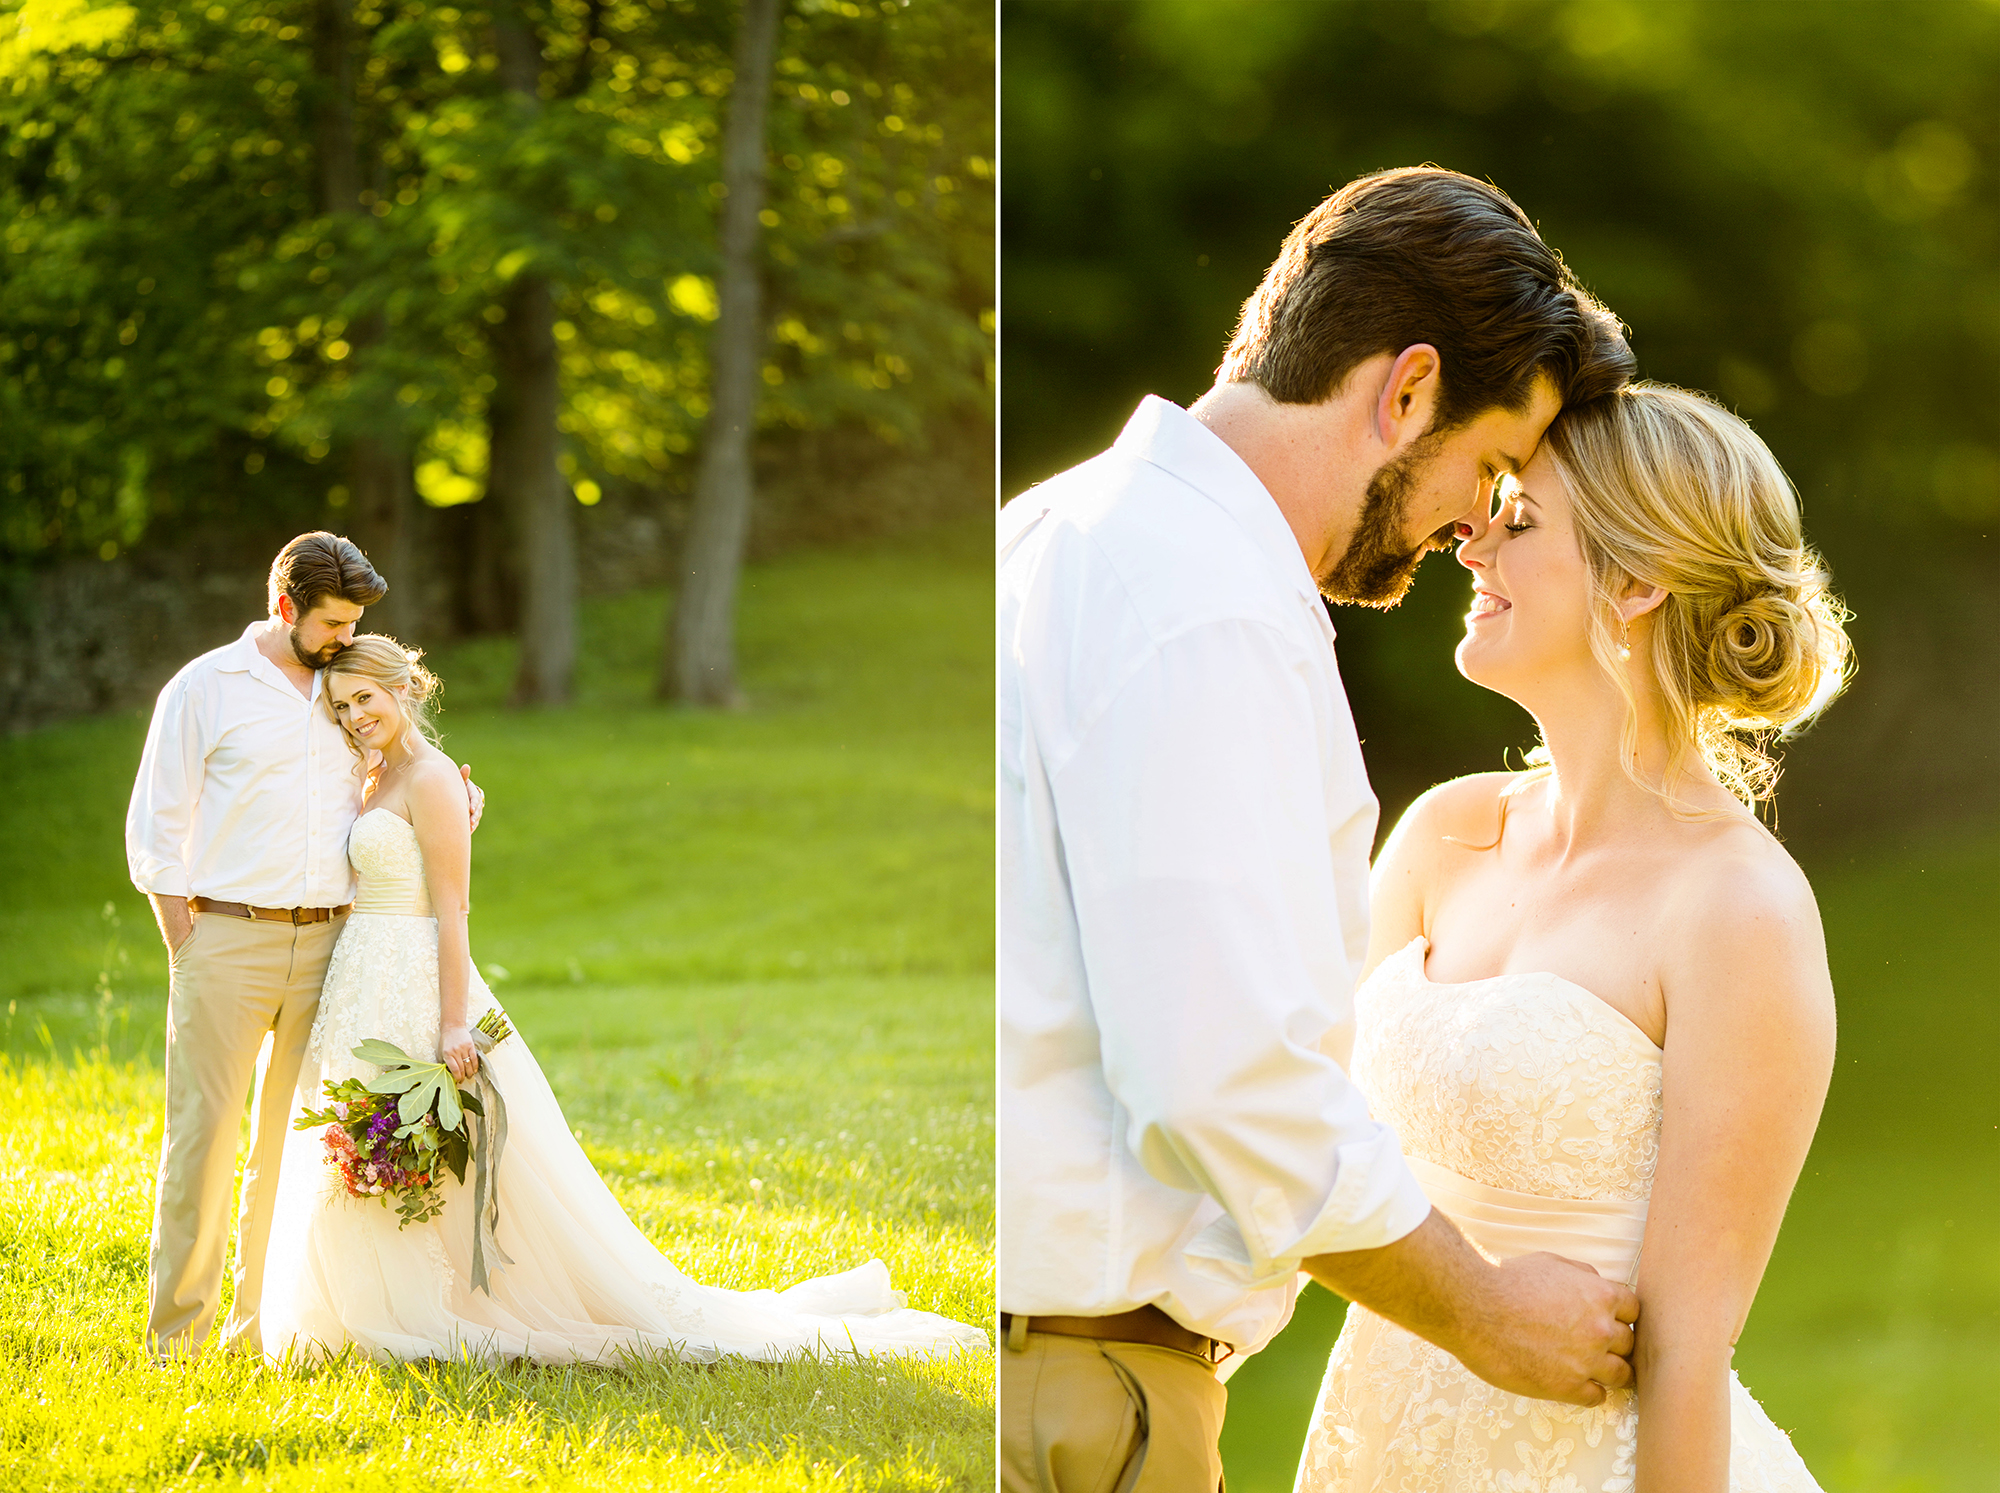 Seriously_Sabrina_Photography_Lexington_Kentucky_Romantic_Shakertown_Wedding_Portraits_Mazzetti4.jpg